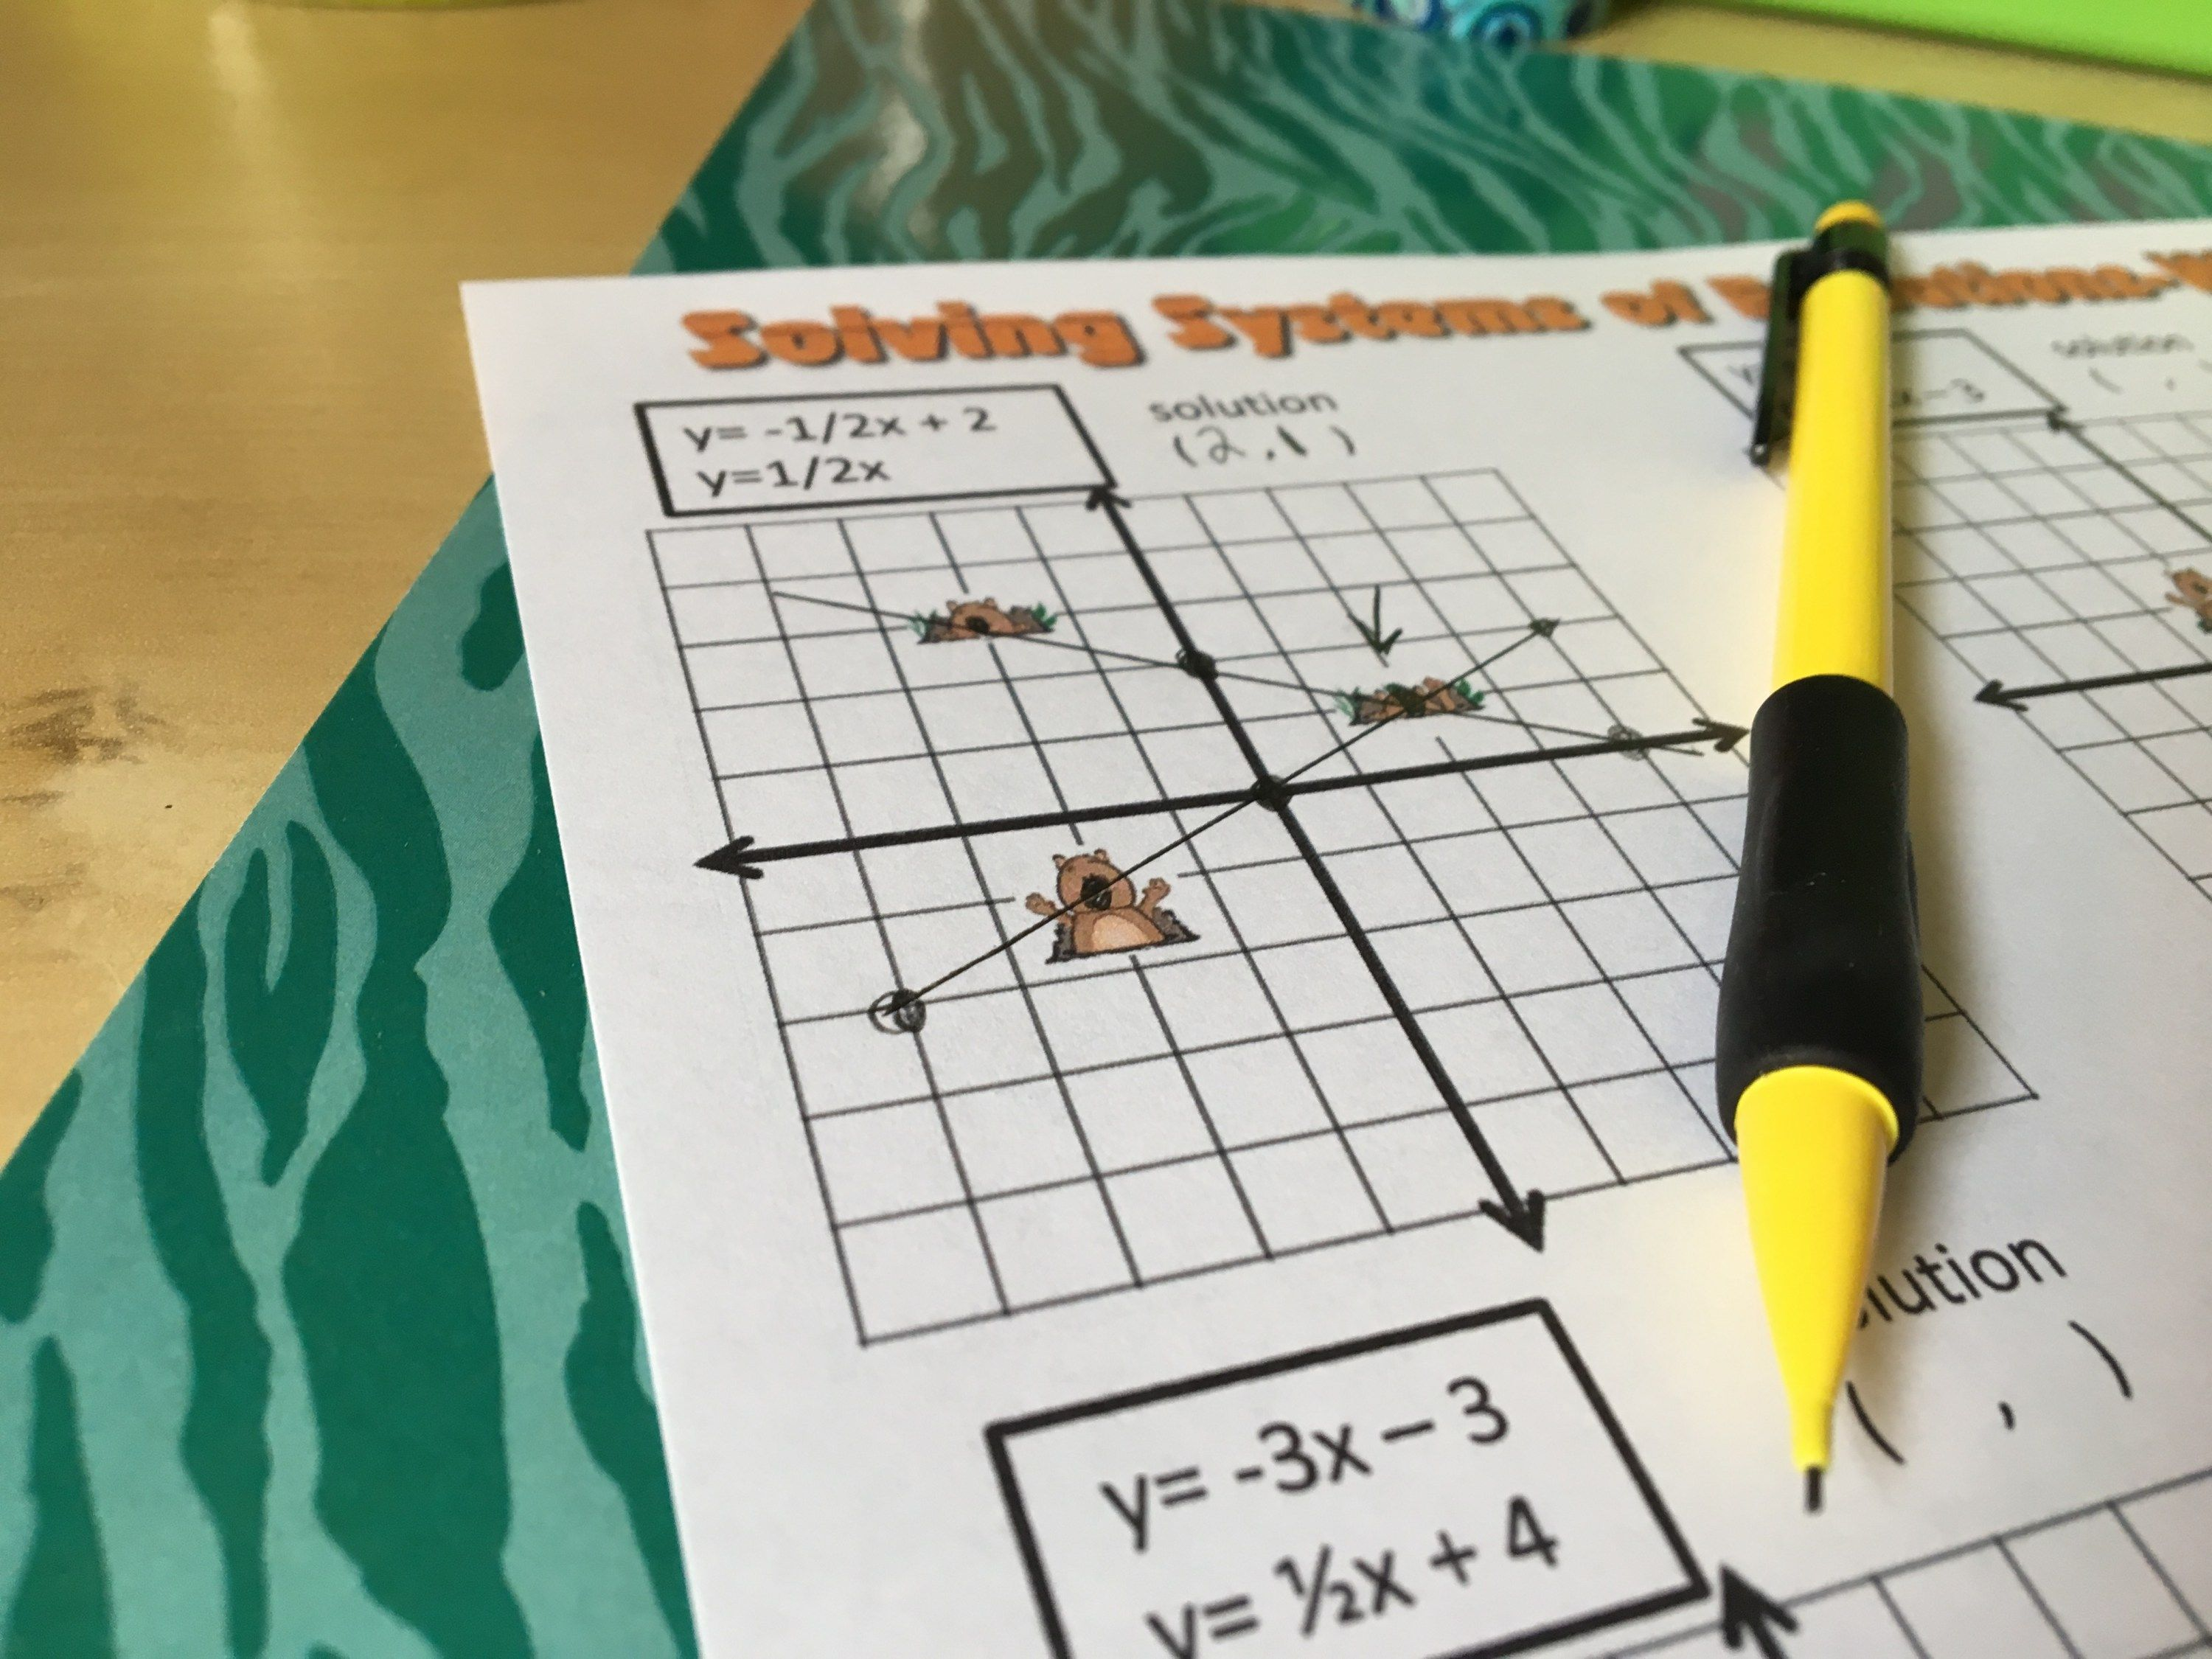 11 Graphing Activities for Solving Systems of Linear Equations | Systems of  equations, Graphing activities, Graphing